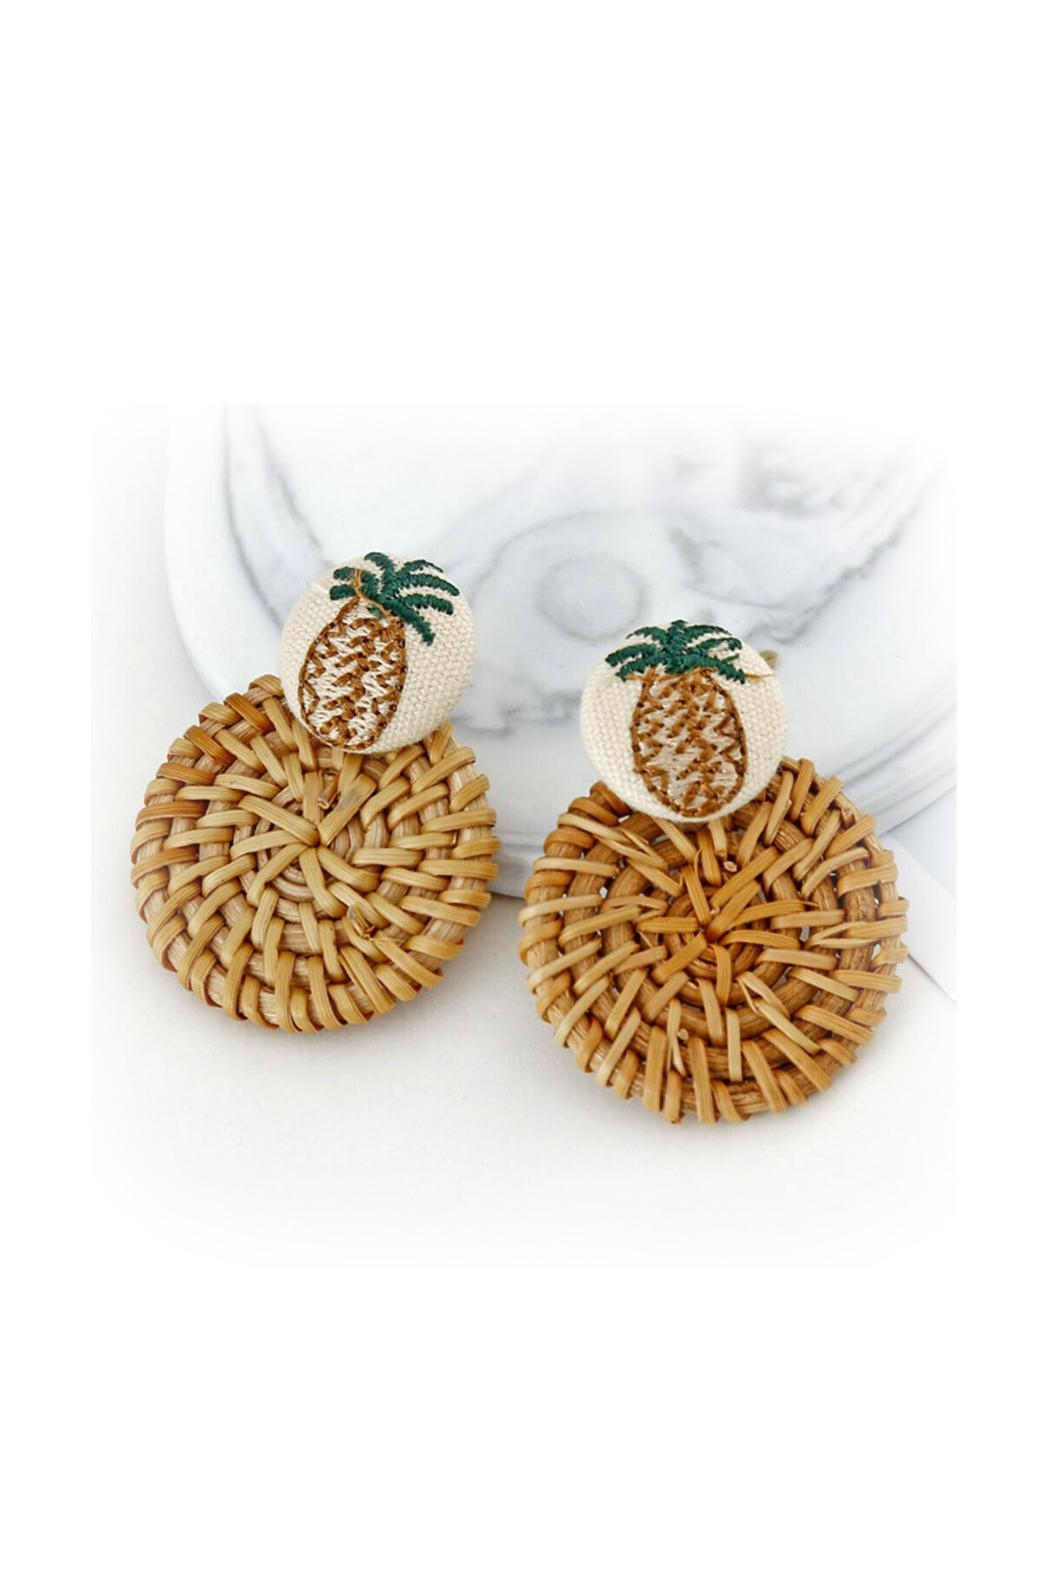 Mimi's Gift Gallery Rattan Pineapple Earrings - Main Image